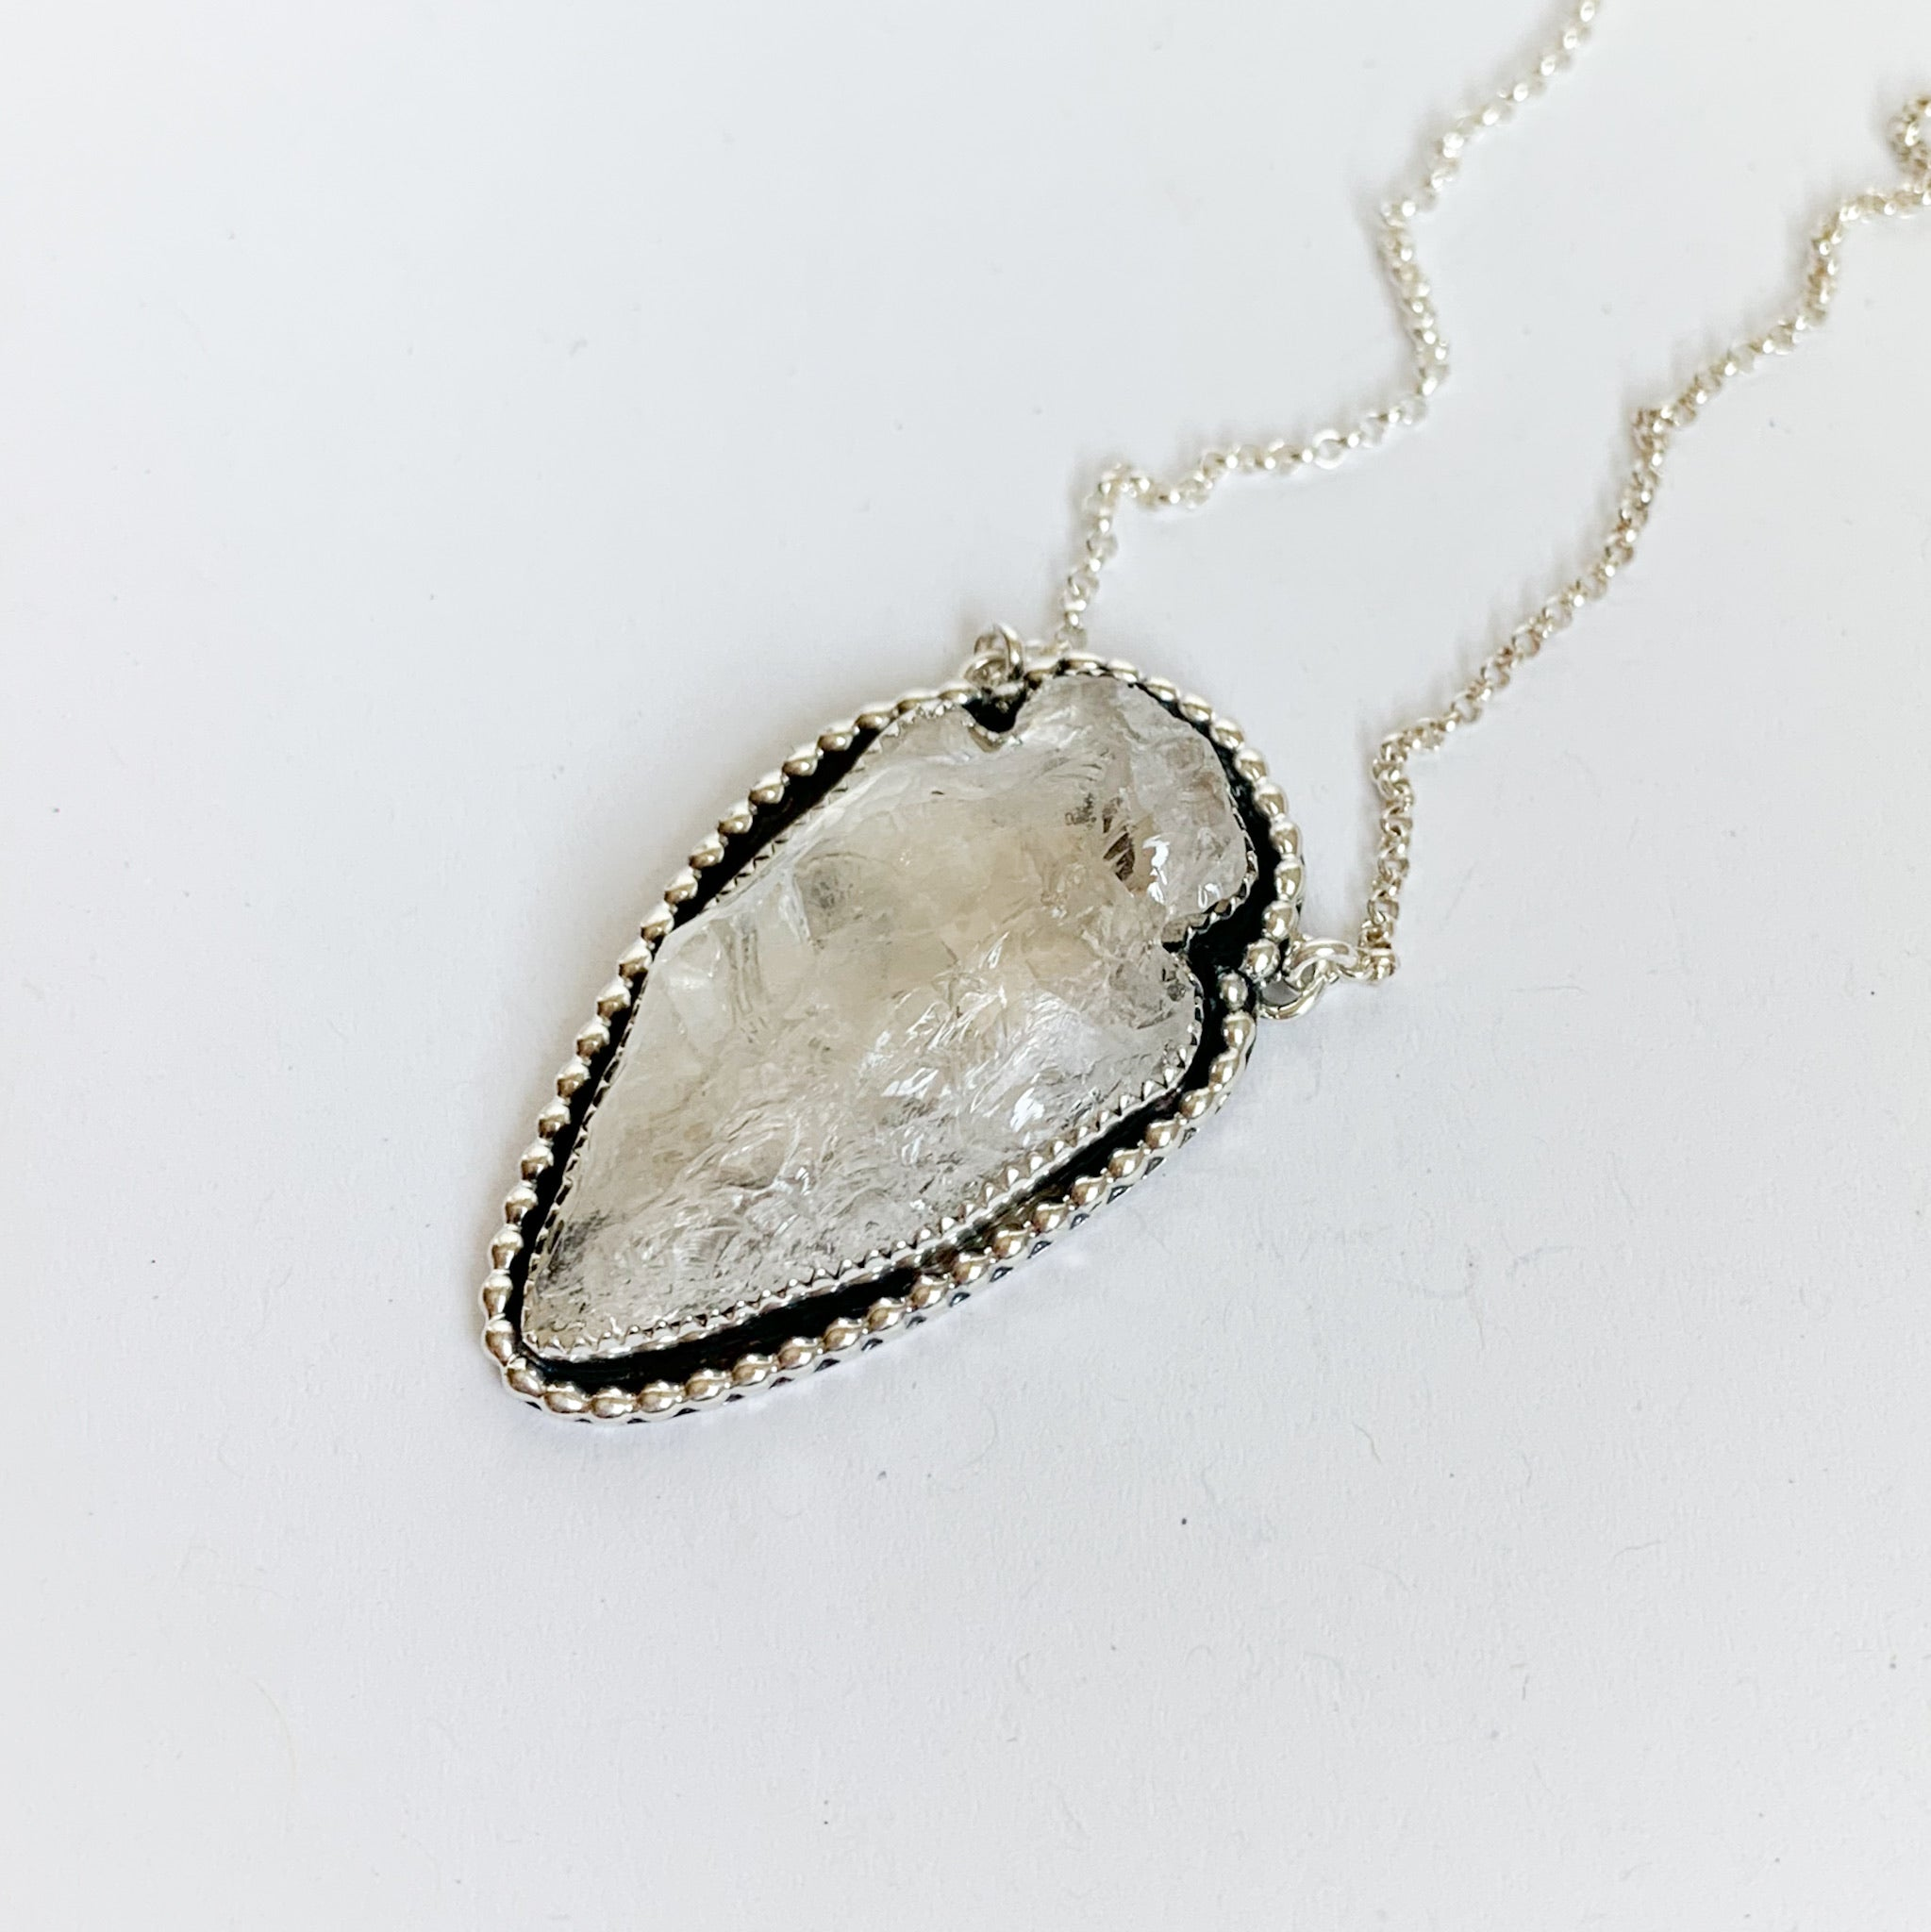 Quartz crystal arrowhead necklace with bead detail